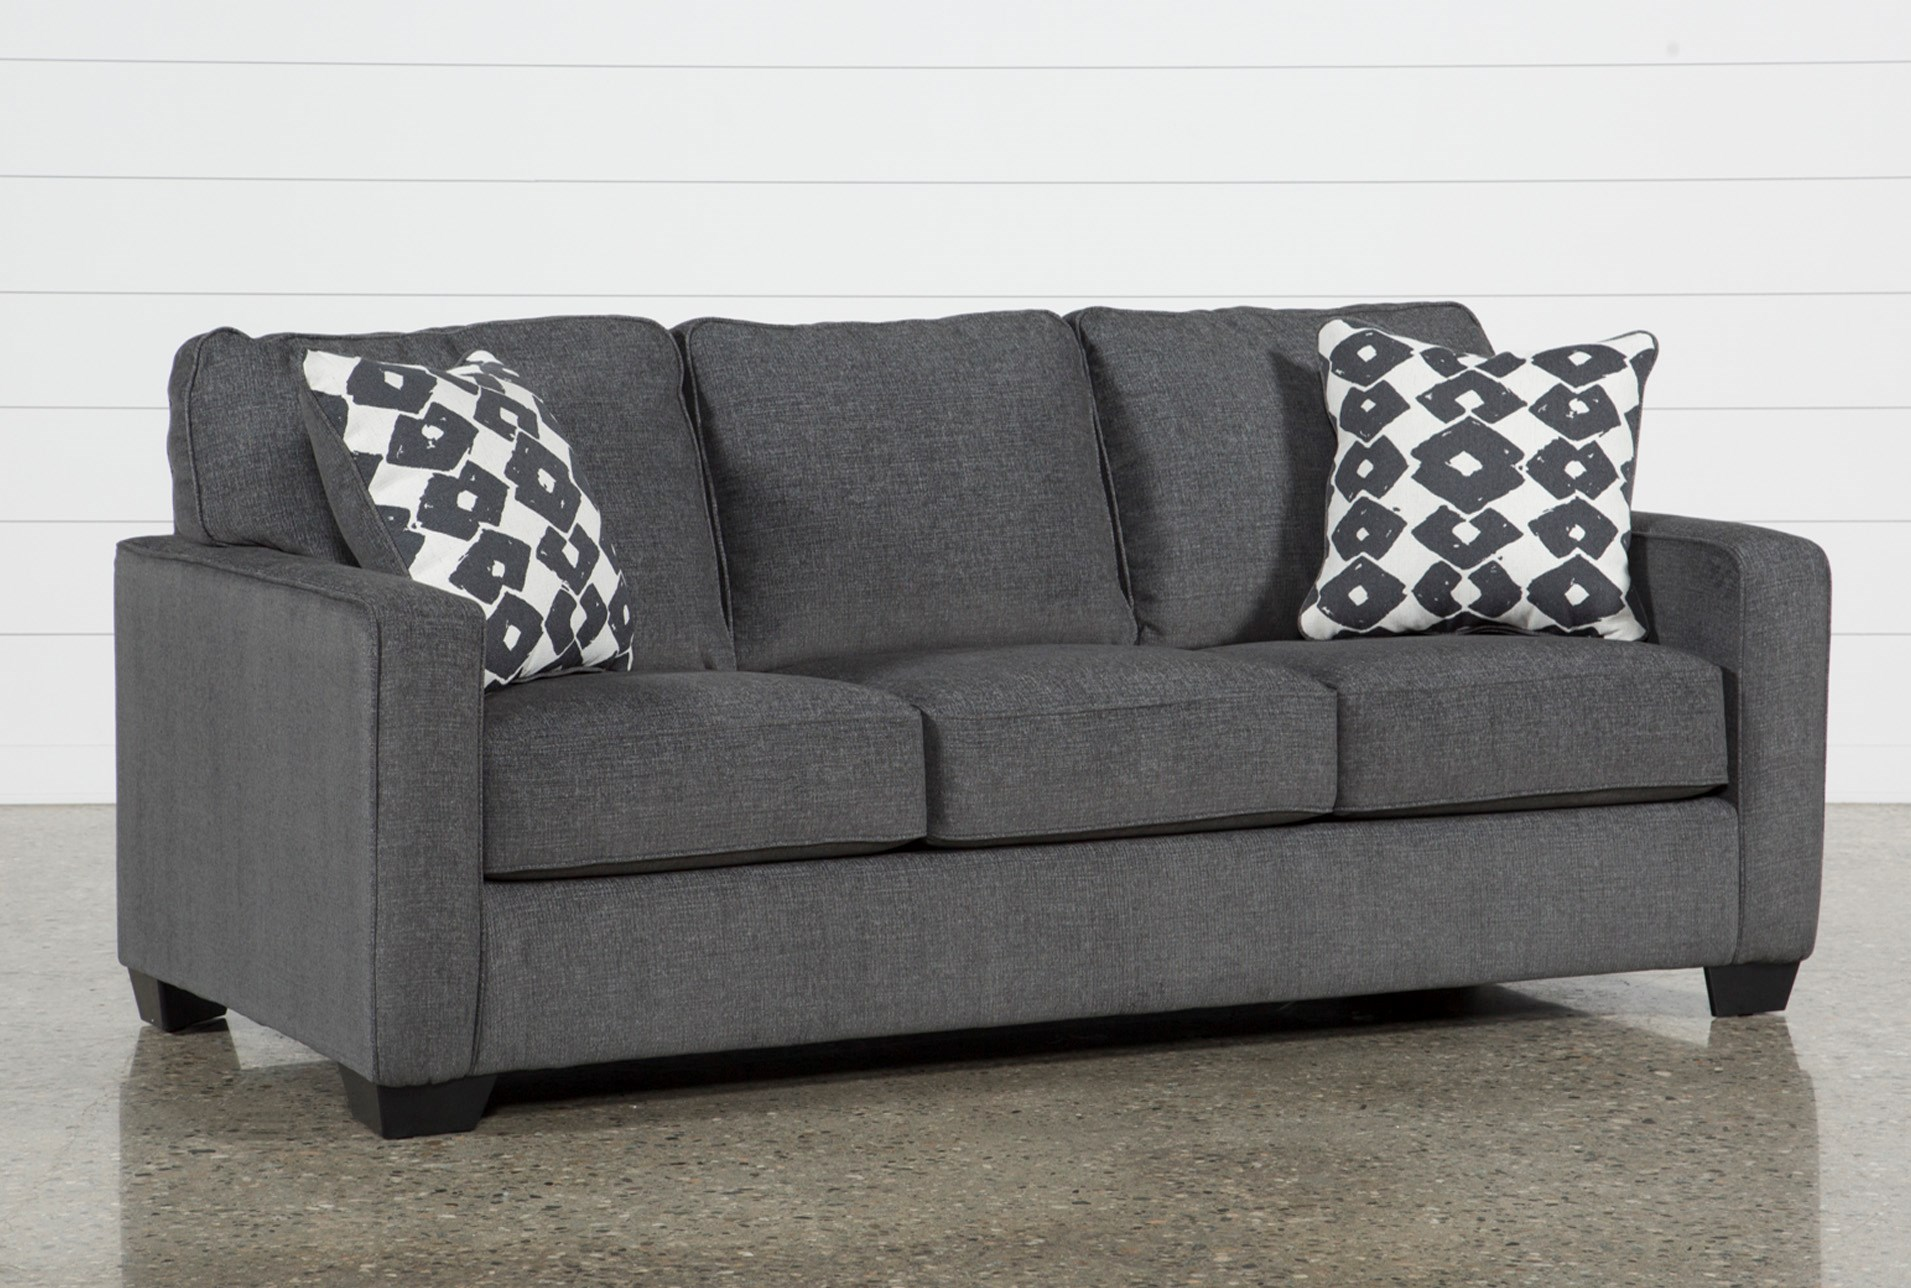 Turdur queen sofa sleeper qty 1 has been successfully added to your cart